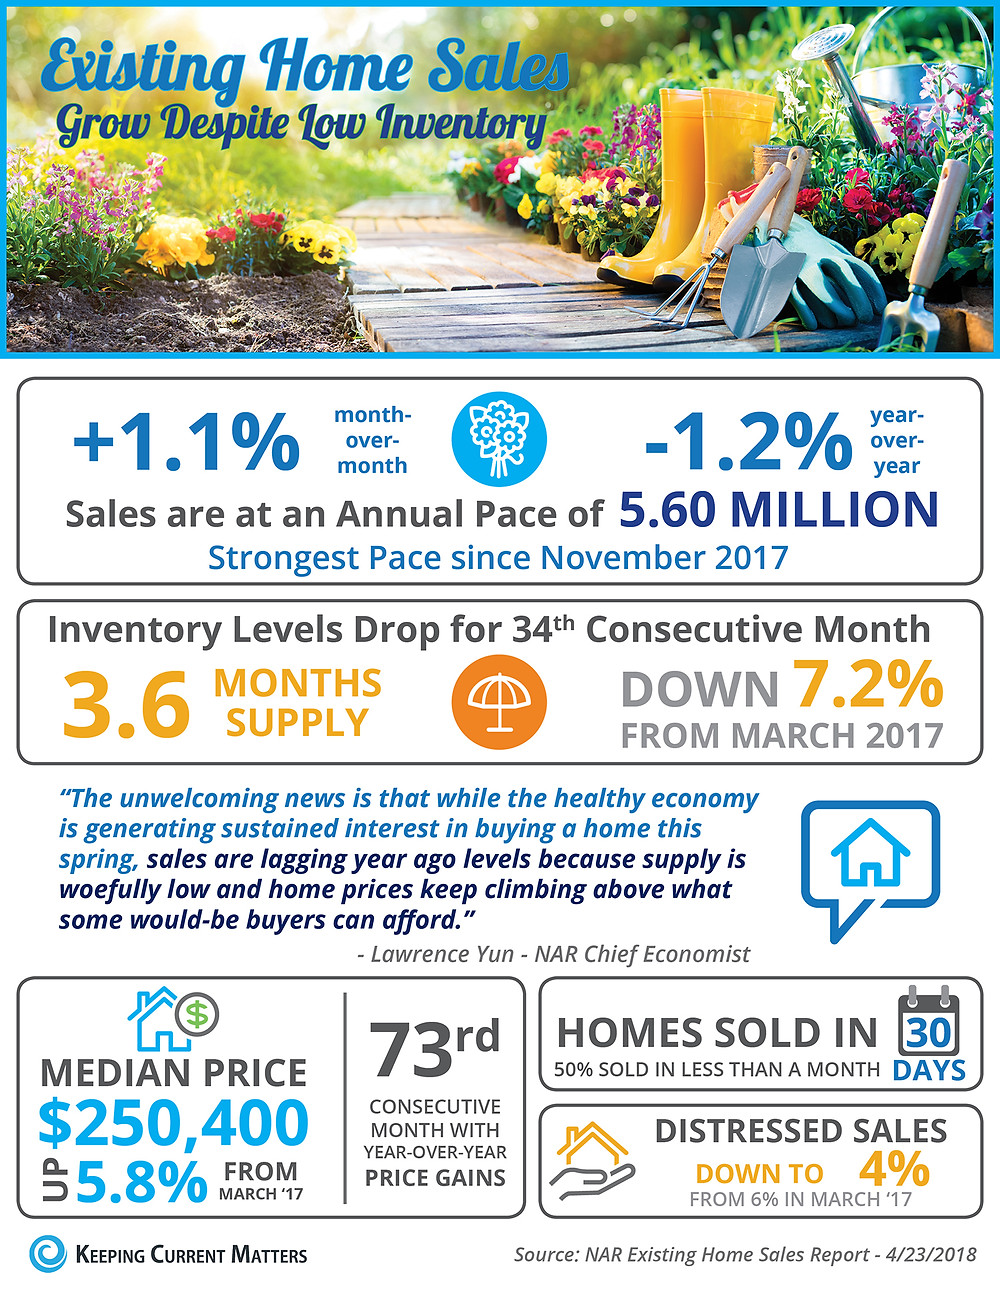 Existing Home Sales Grow Despite Low Inventory [INFOGRAPHIC] | Keeping Current Matters